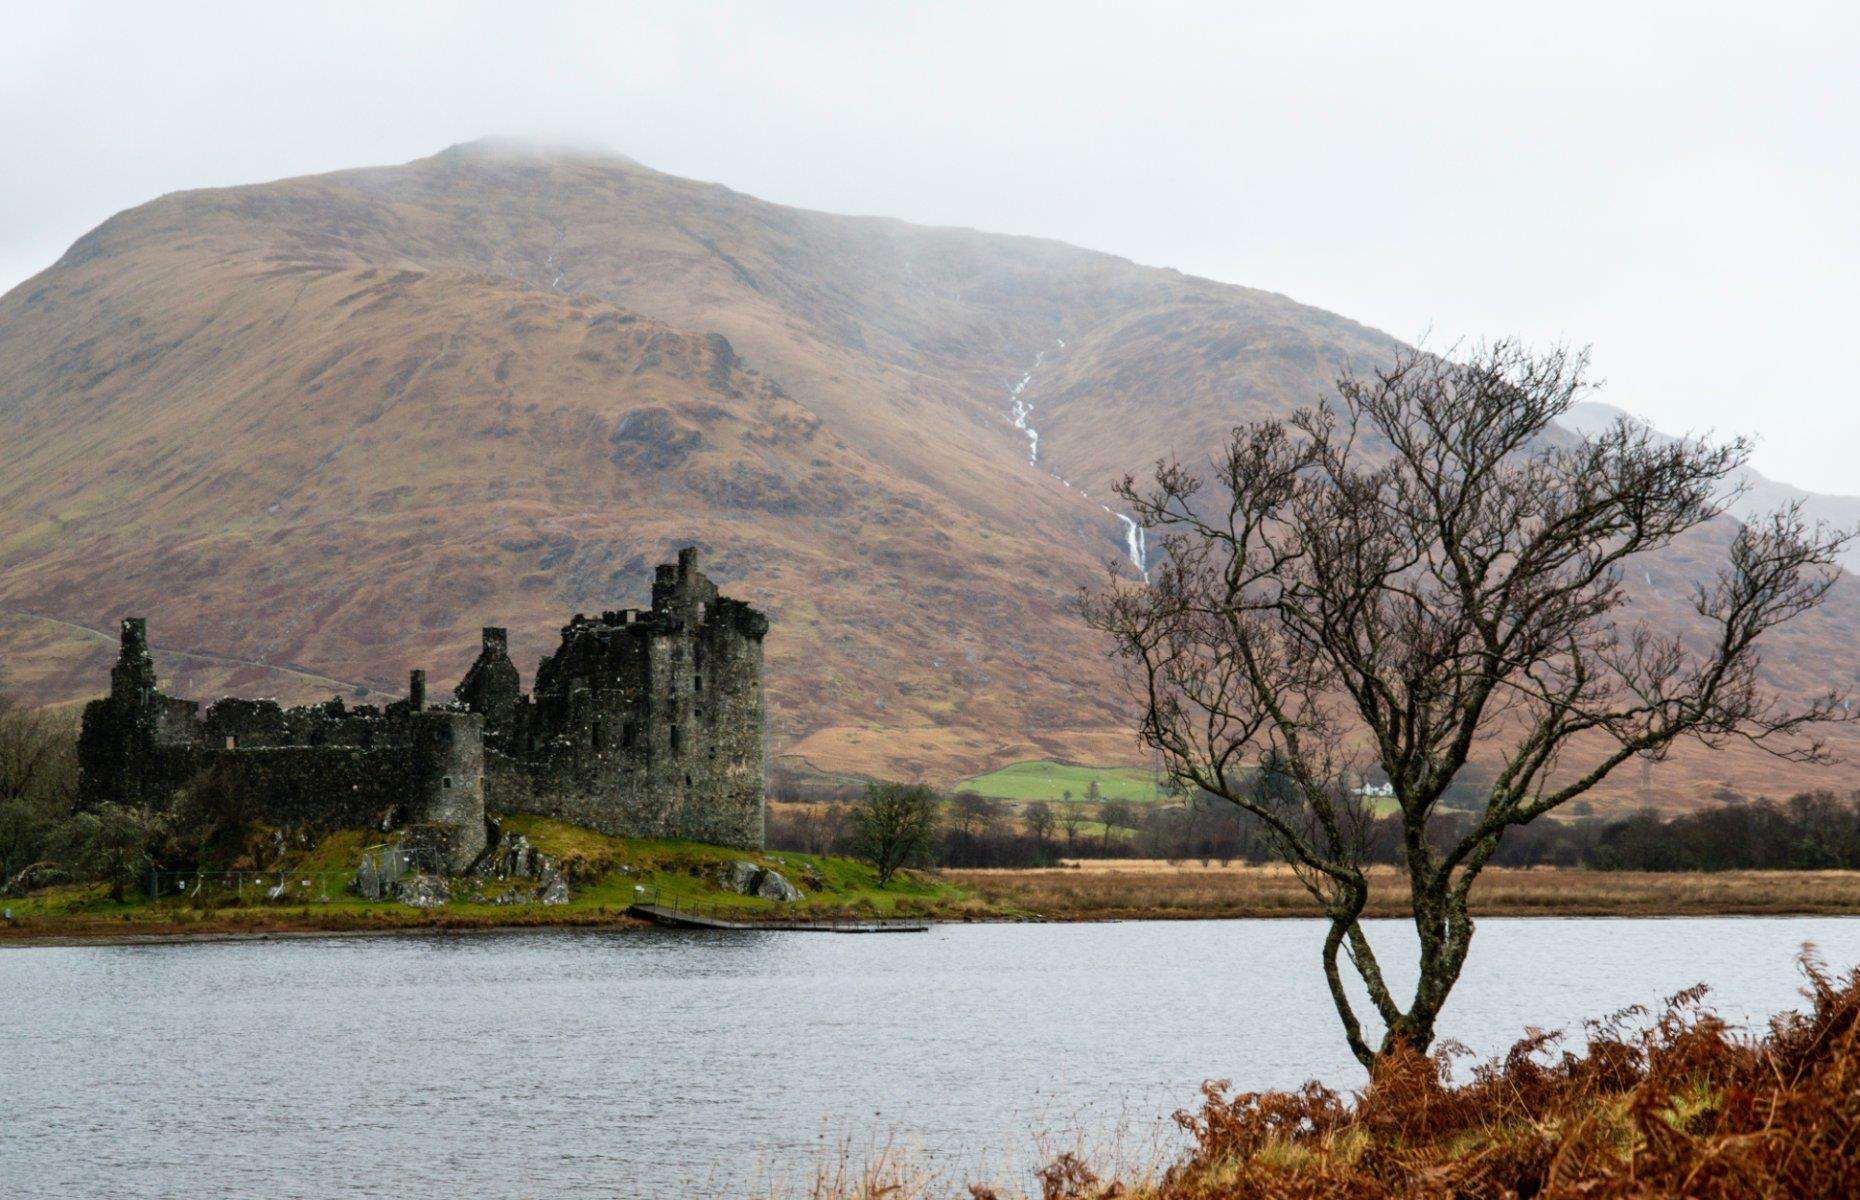 Slide 24 of 29: Back in the 13th century, Kilchurn Castle was a hub of energy. It was built in the mid-1400s by the Campbells of Glenorchy, a family who dominated the central Highlands. Originally it was constructed on an island not much bigger than the castle itself and was accessed by a causeway. During the Jacobite uprising of the late 1600s, the castle was converted into a garrison stronghold and at one time could hold 200 troops.